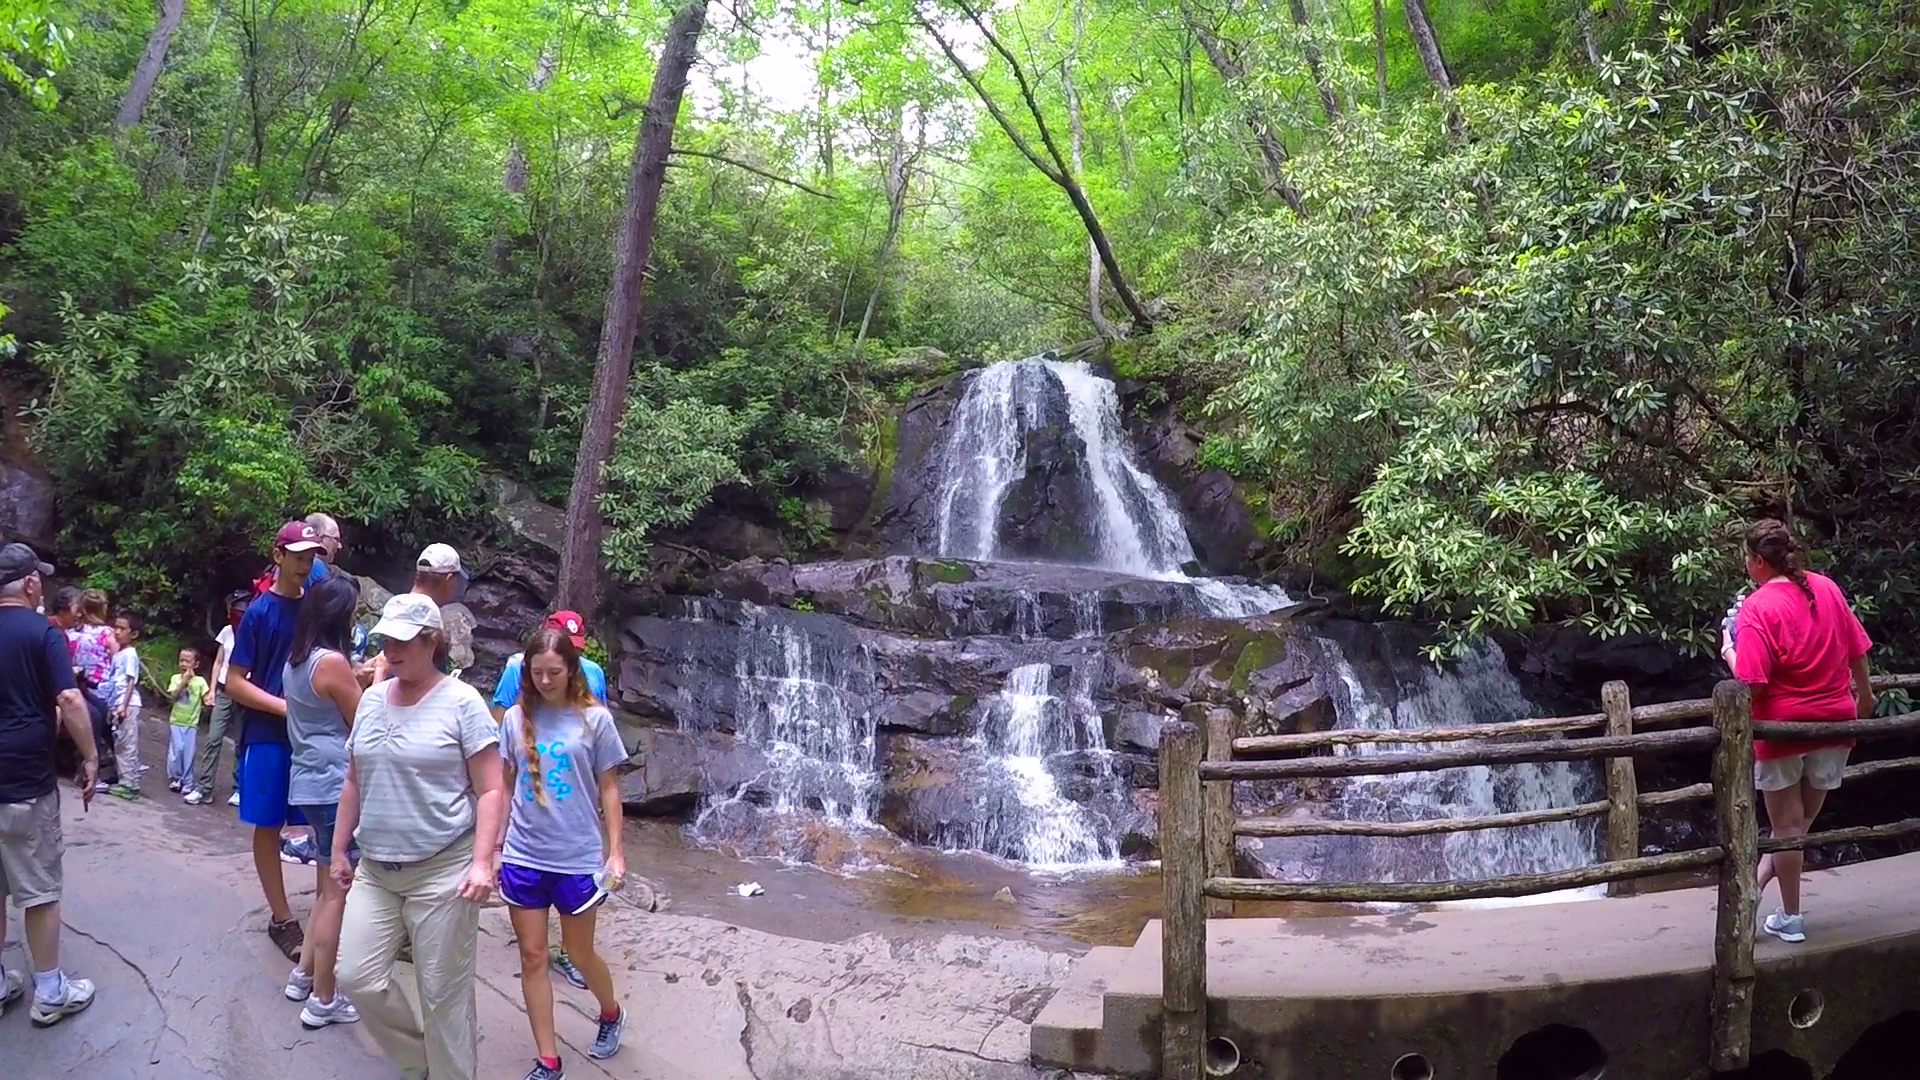 5 smoky mountain trails that are perfect for family hikes